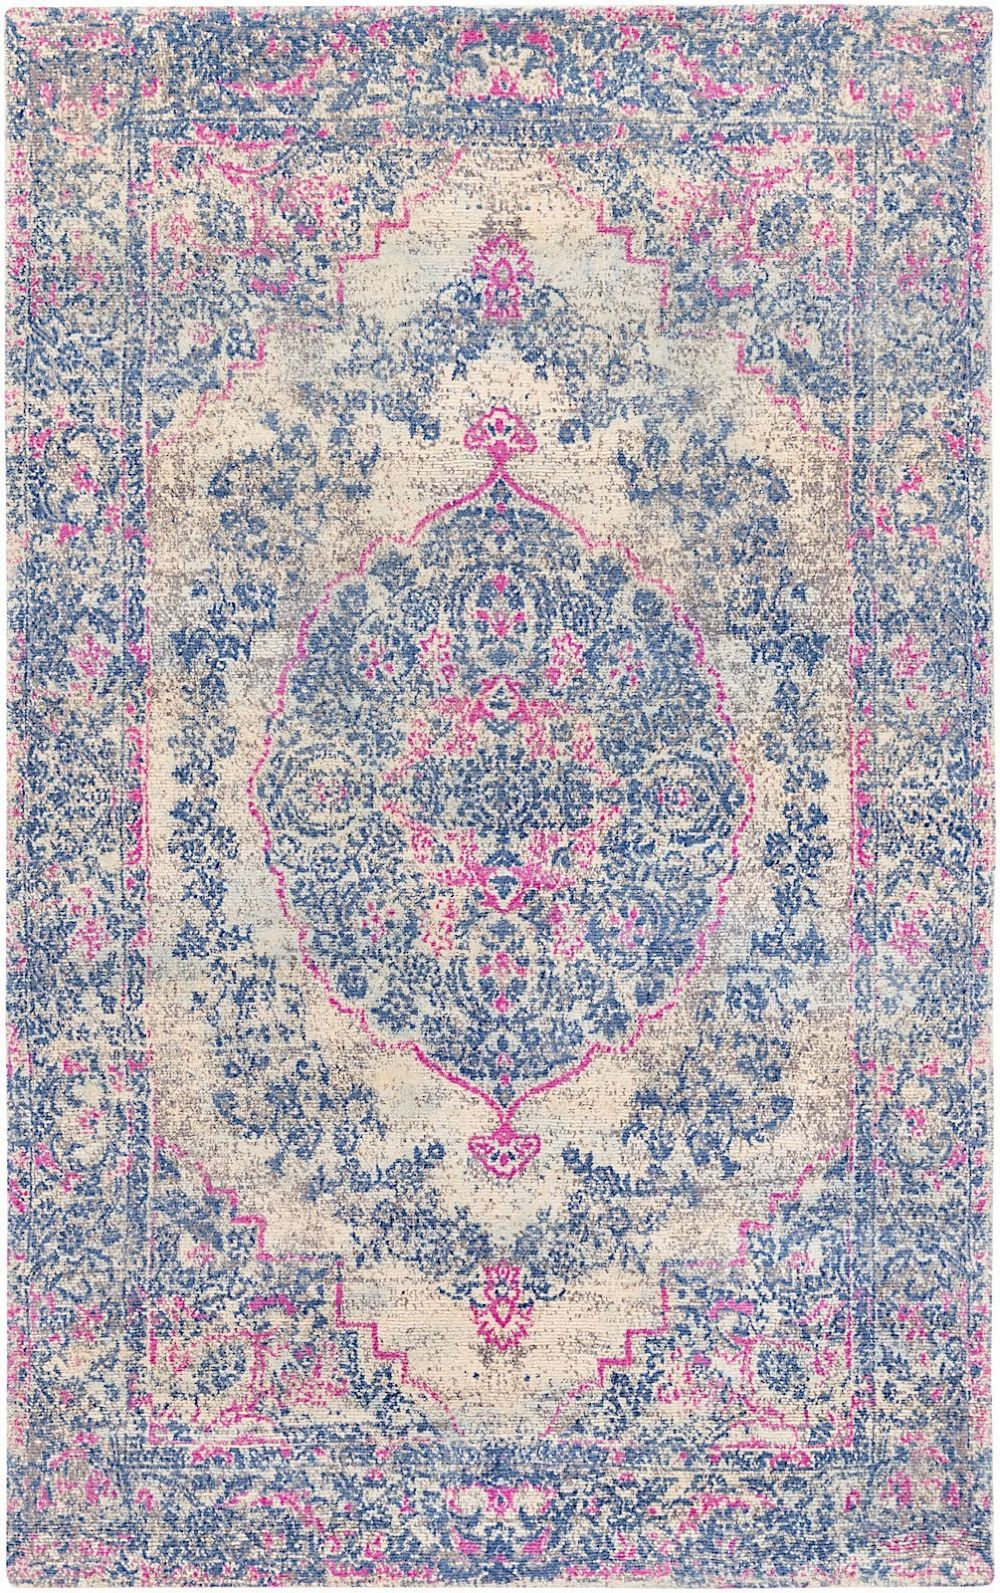 Rugpal Courtney Traditional Area Rug Collection Area Rug Collections Area Rugs Blue Rug